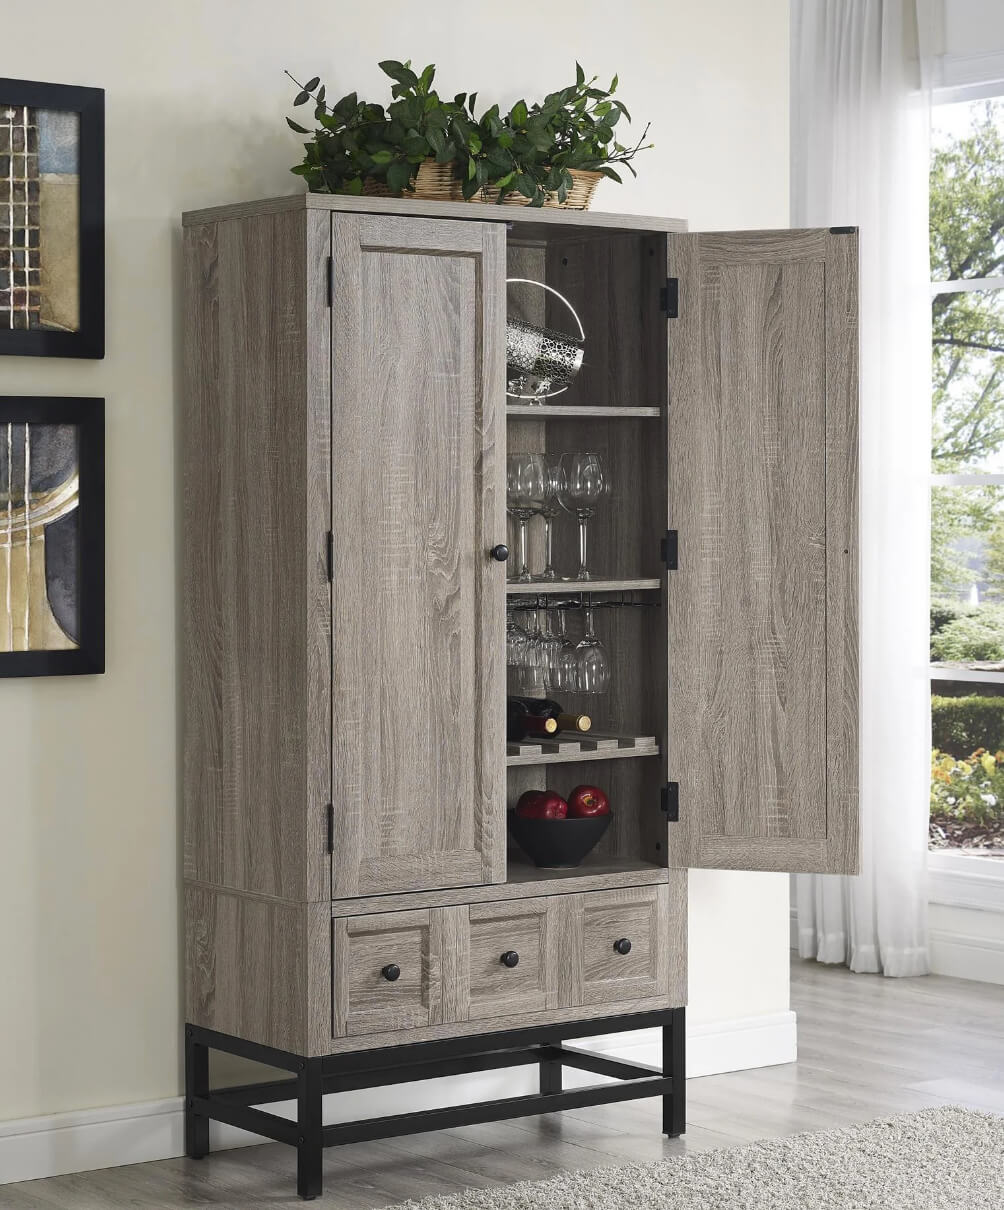 Bar cabinet ideas